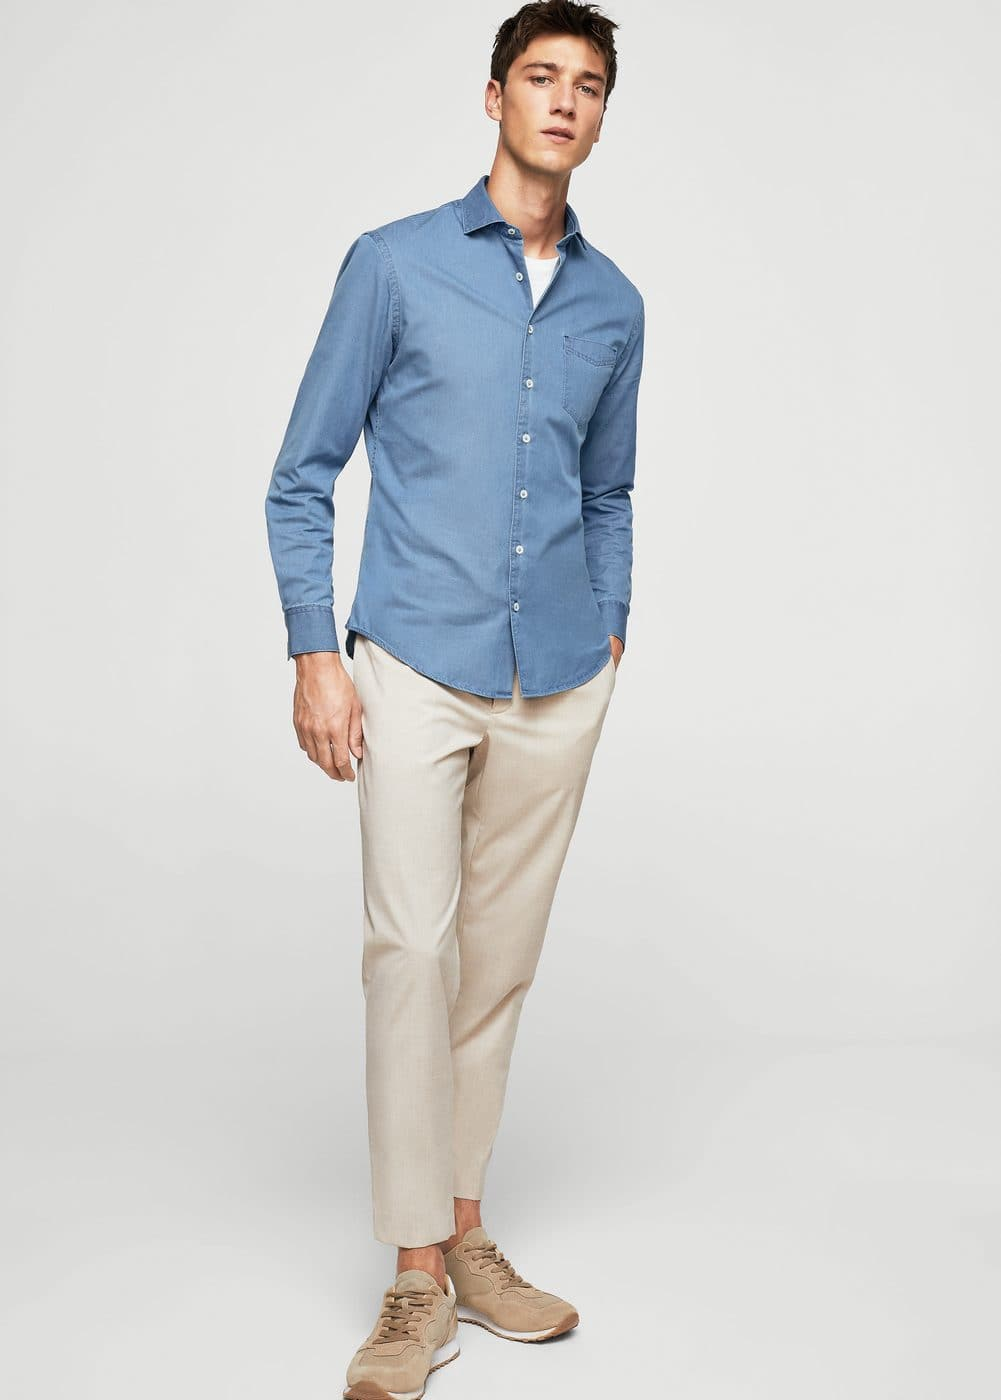 Chemise slim-fit coton chambray | MANGO